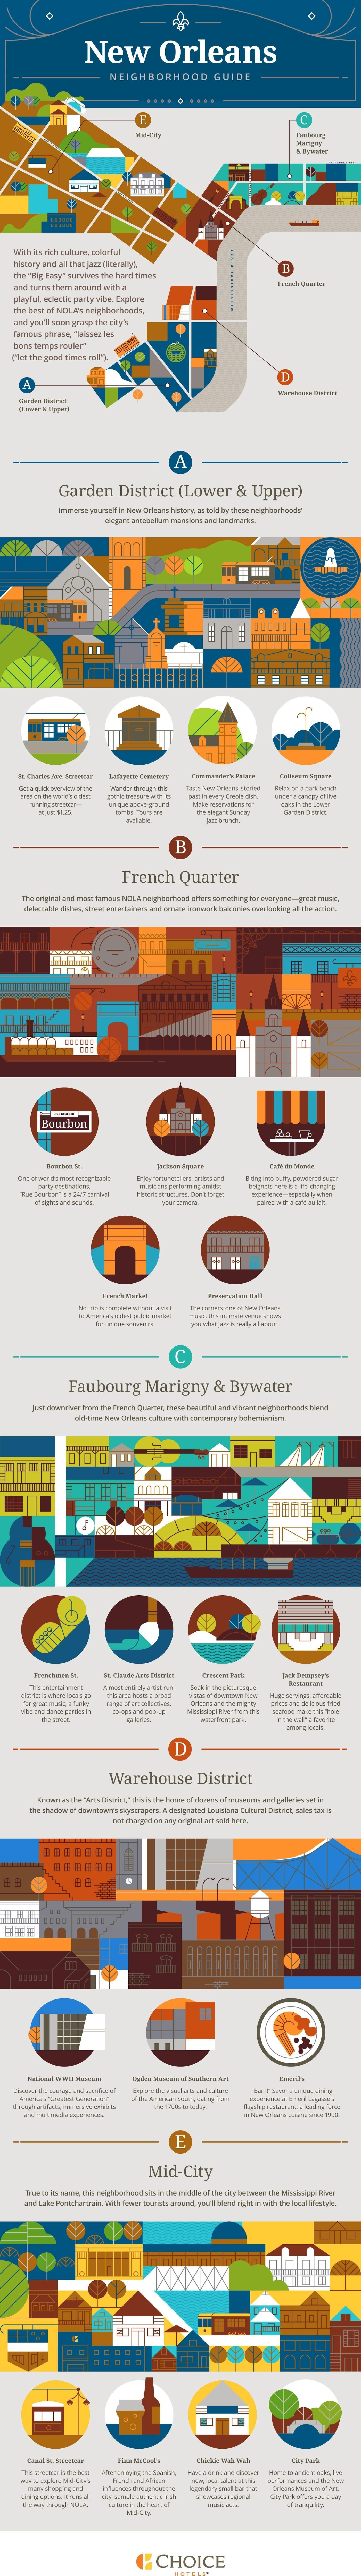 Neighborhood Guide: New Orleans #infographic